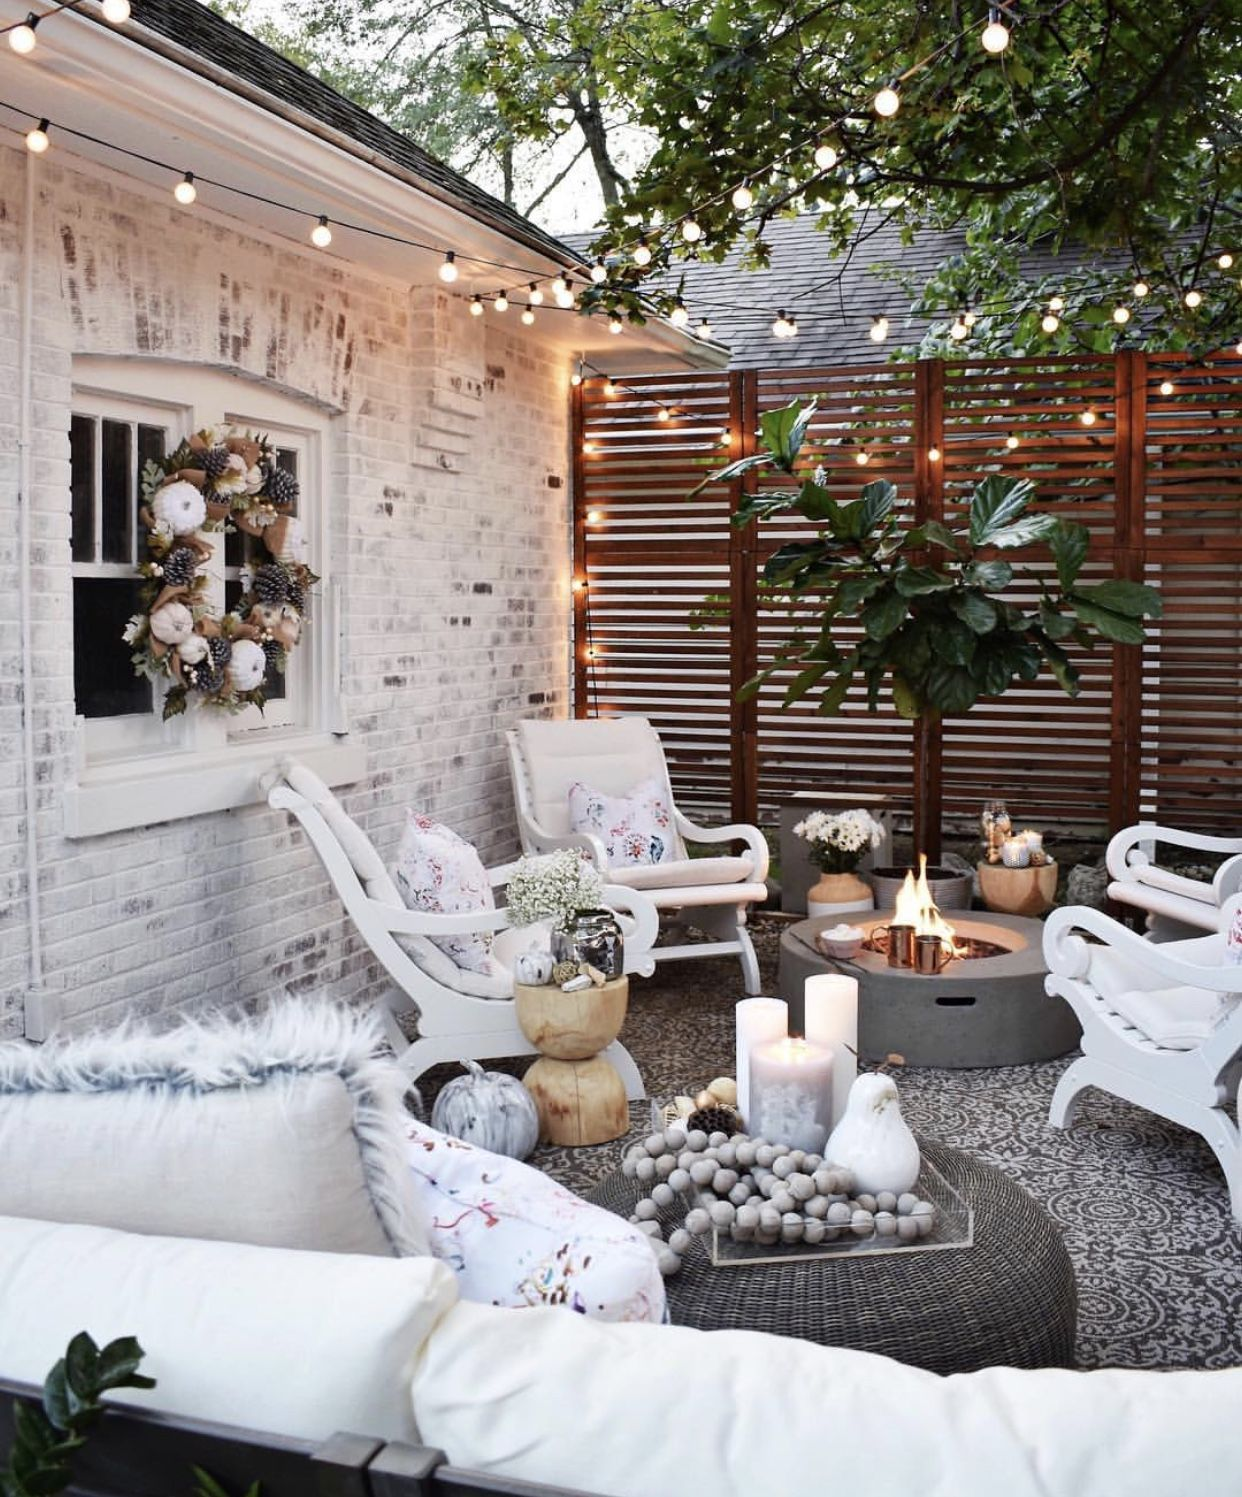 Small Space Landscaping Ideas: Here Are 15 Awesome Ideas That Will Transform Your